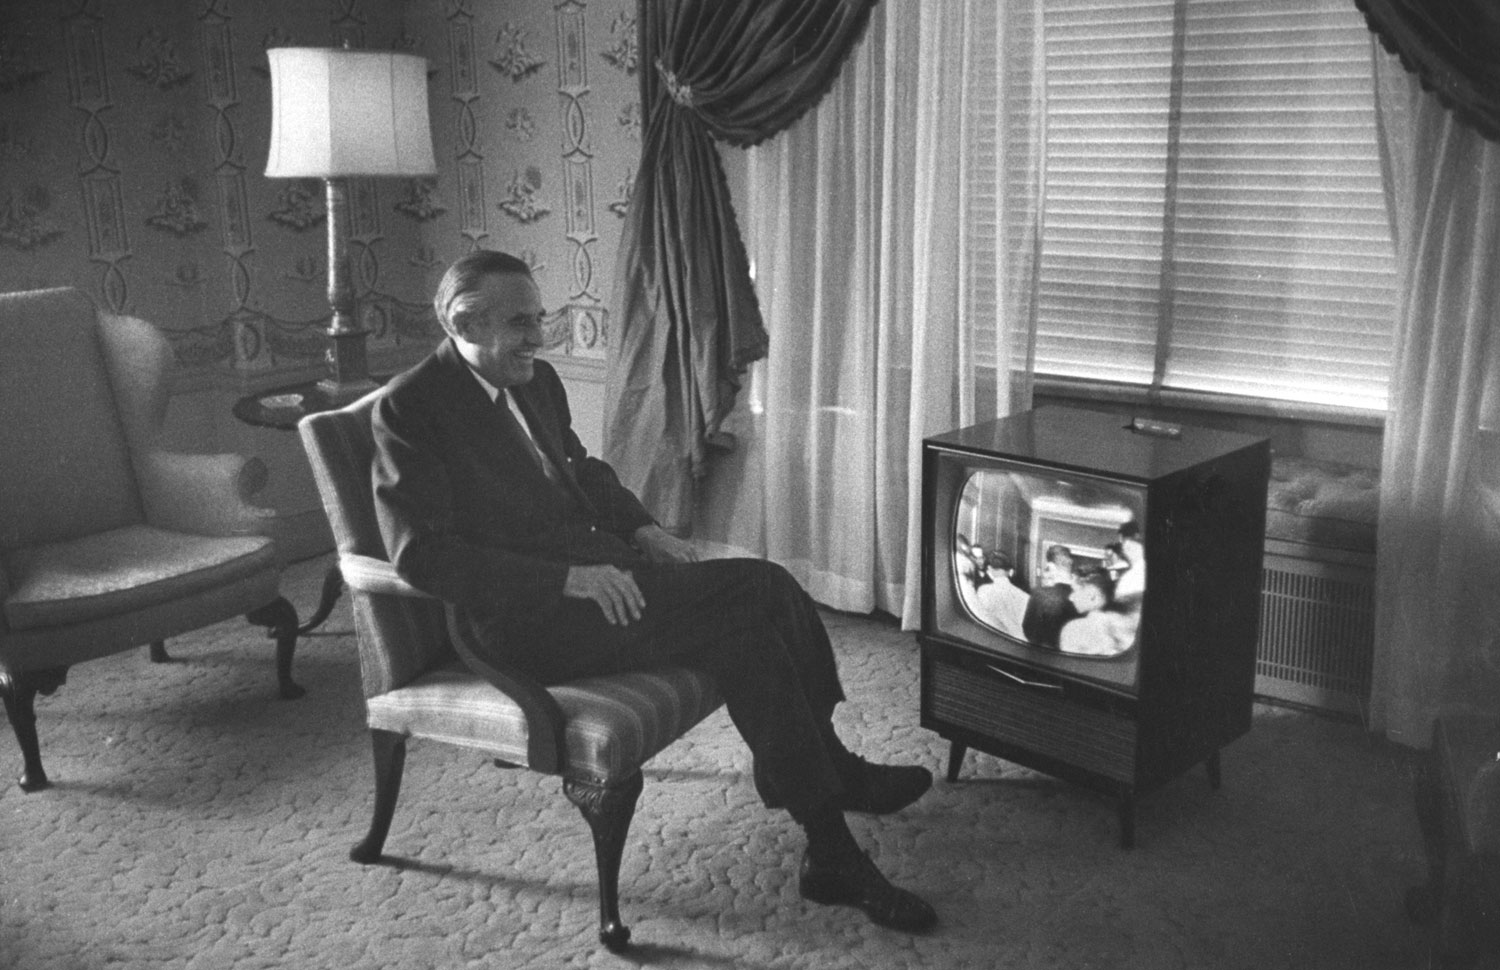 Democratic politician Averell Harriman watches former President Harry S. Truman support him during  the 1956 Democratic National Convention in Chicago. Harriman lost the nomination to Adlai Stevenson that year, and in 1952.